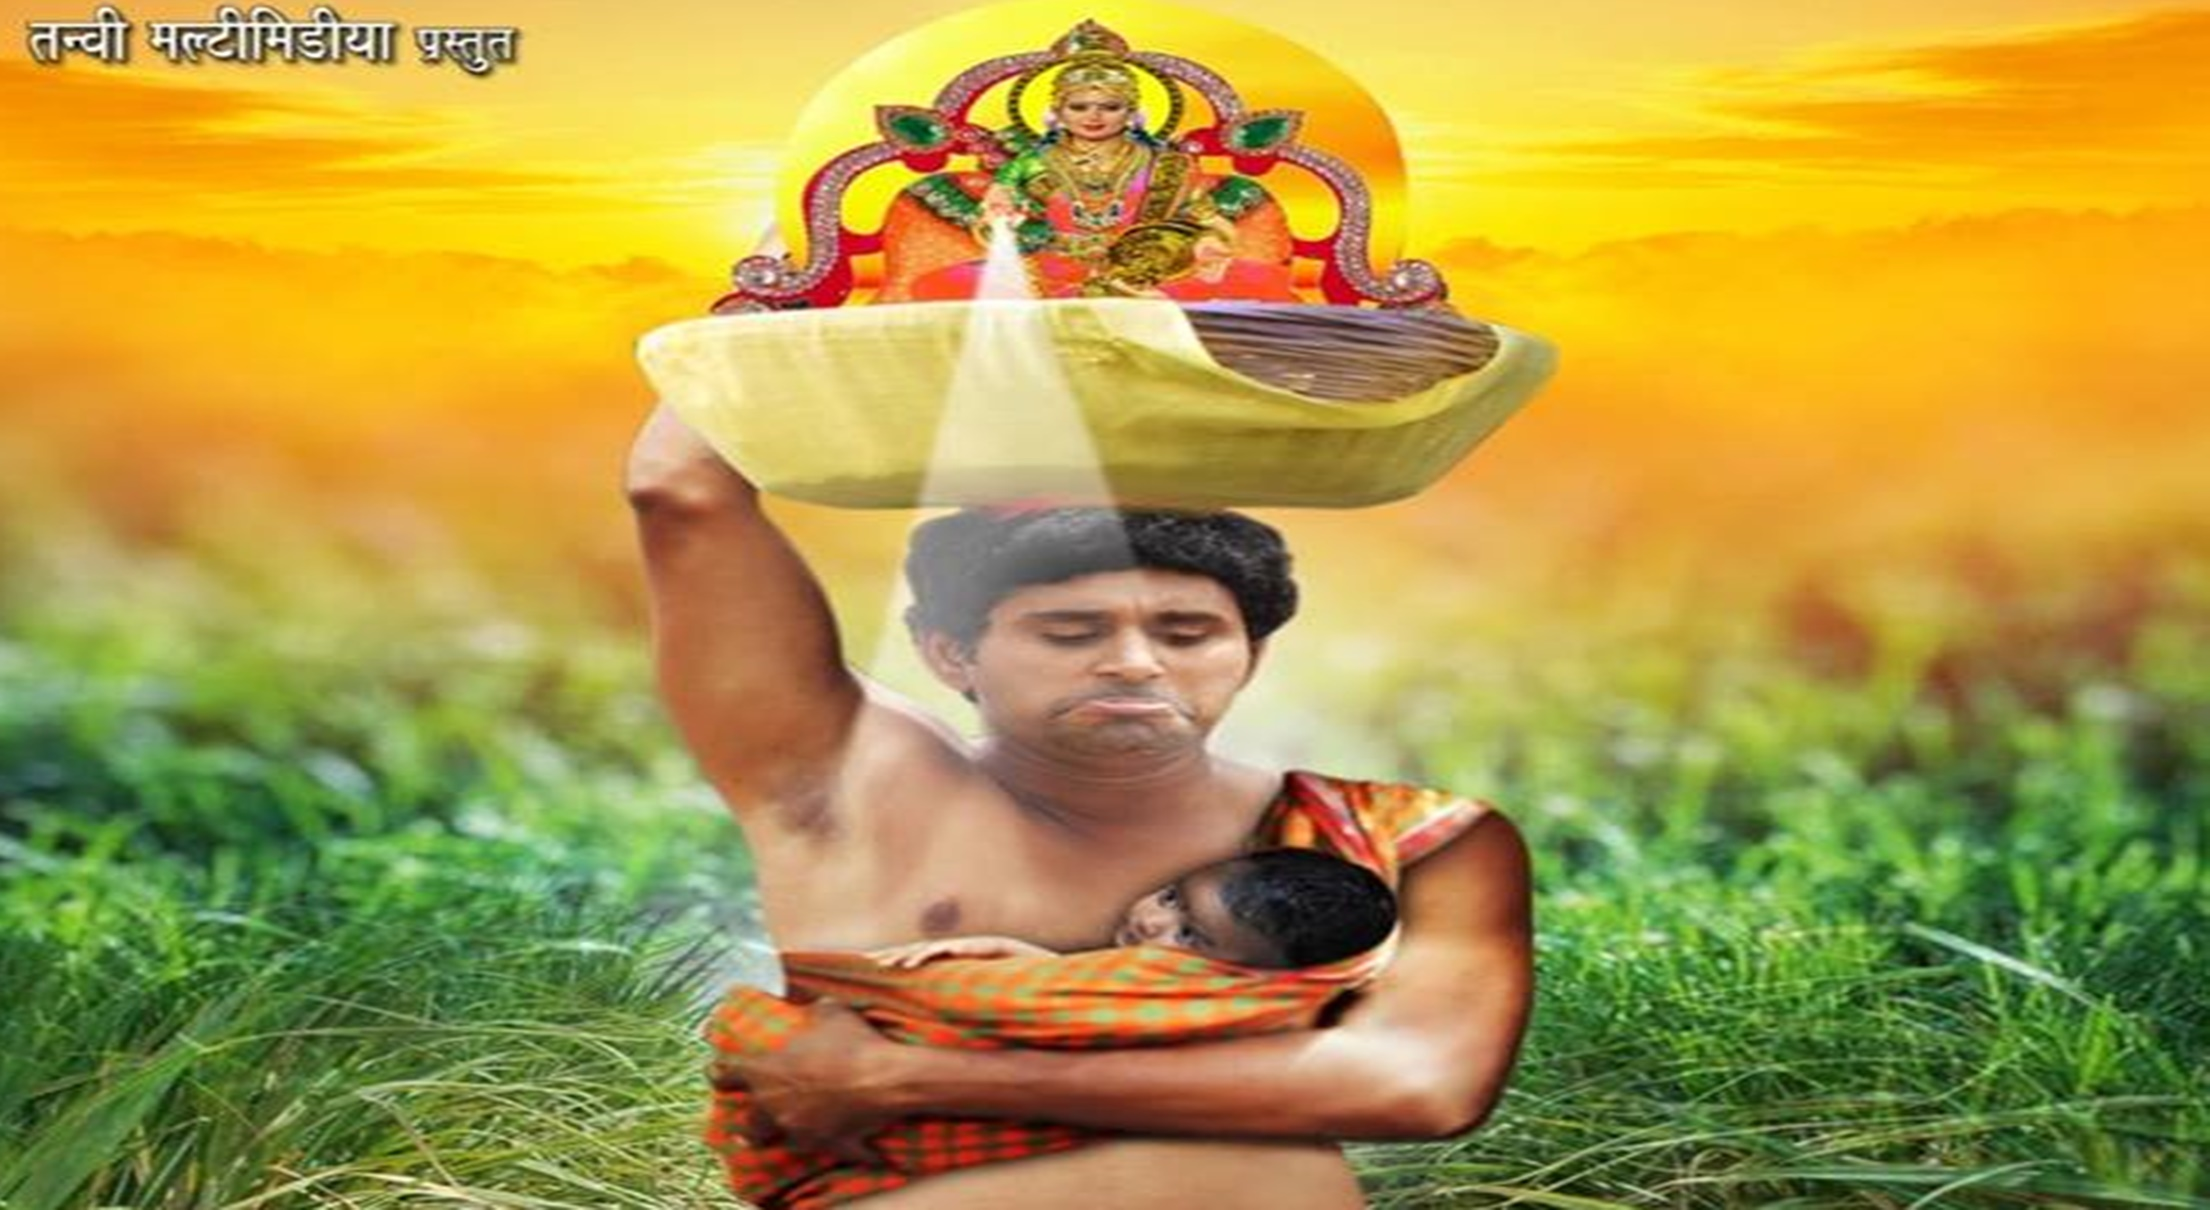 First film on Chhath Maha Parva will be made